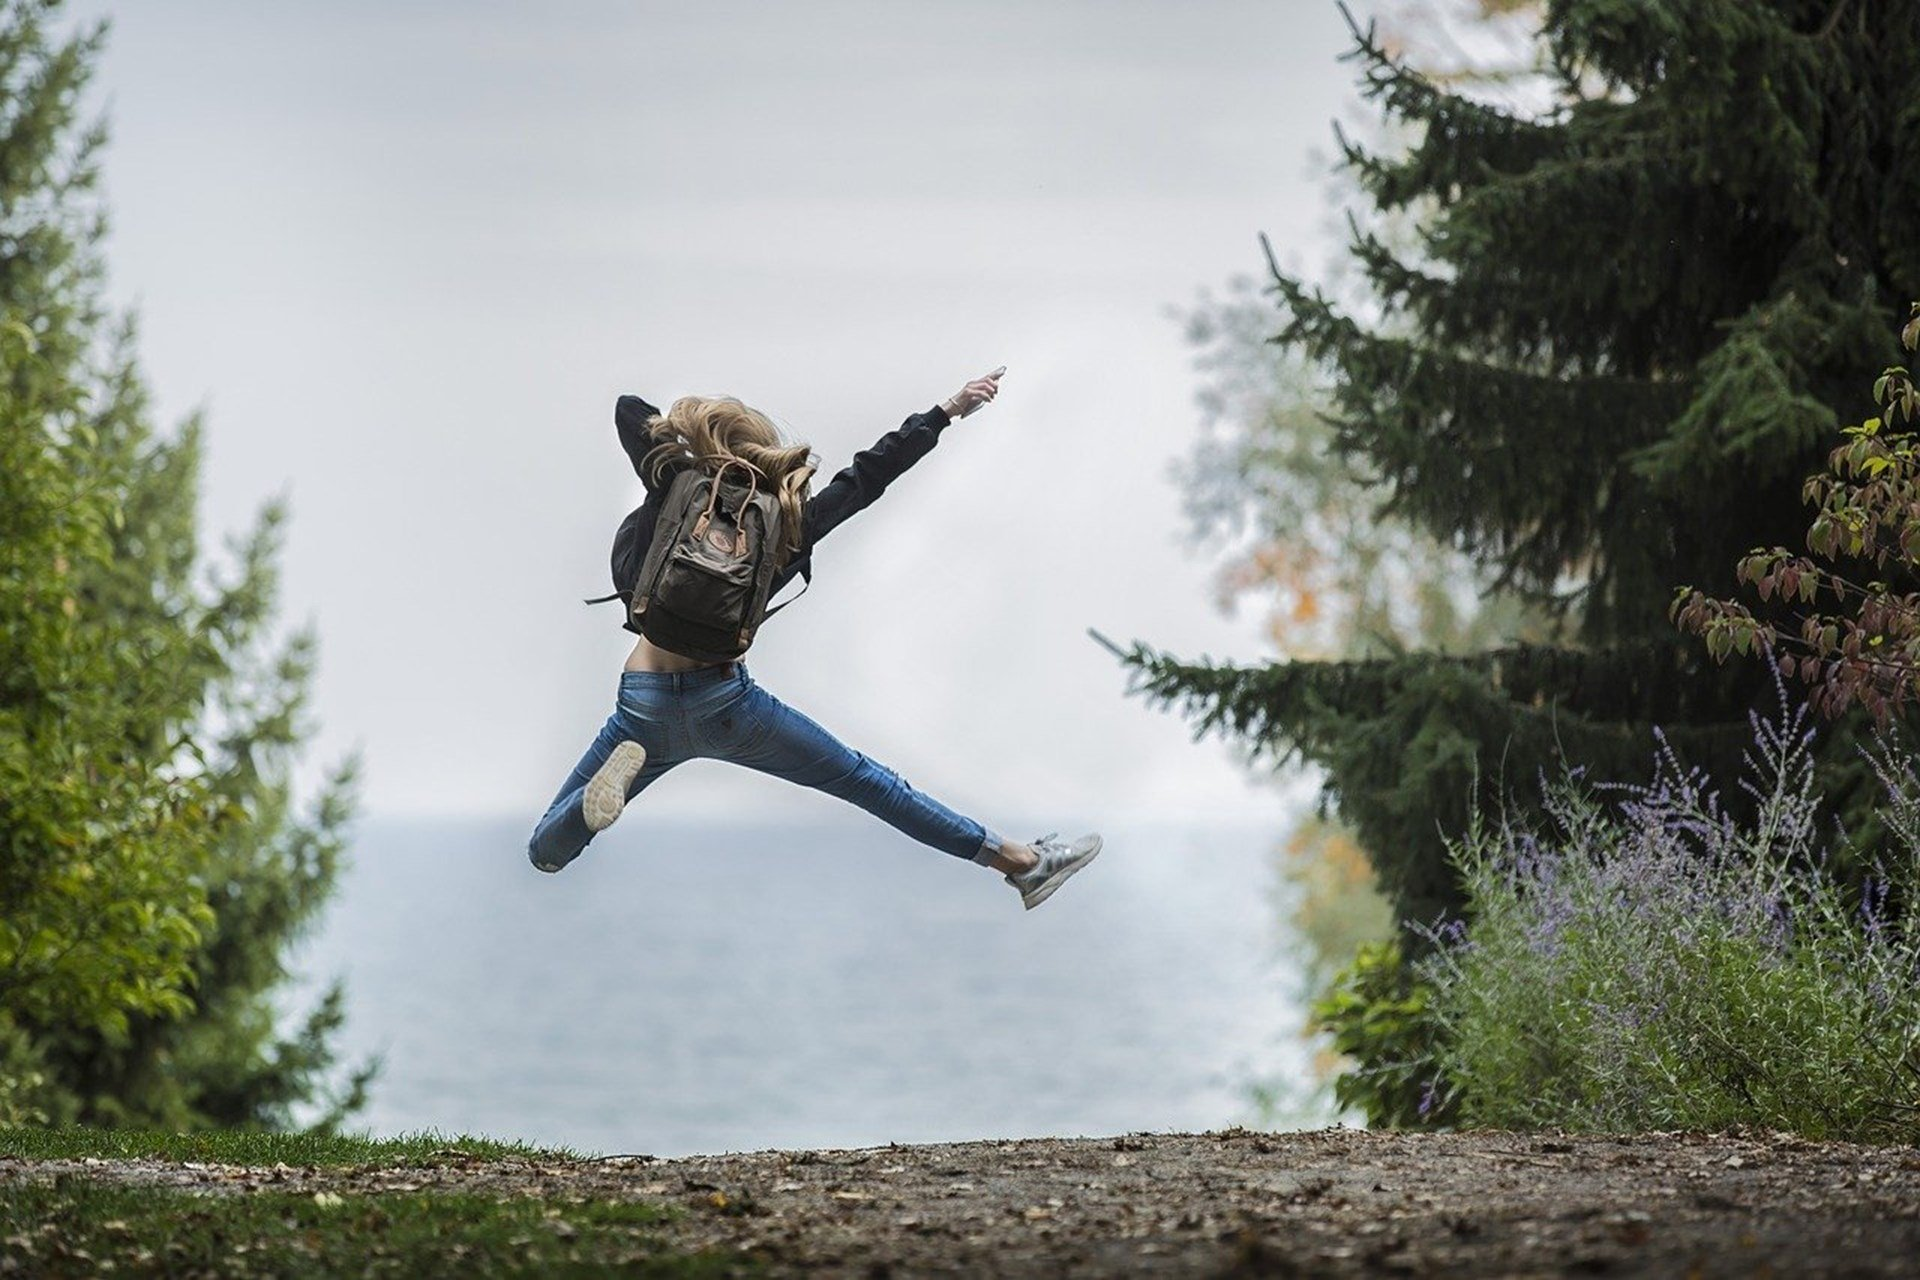 6 Reasons for Optimism in 2020 - Free Teens Youth - Changing Minds, Transforming Lives